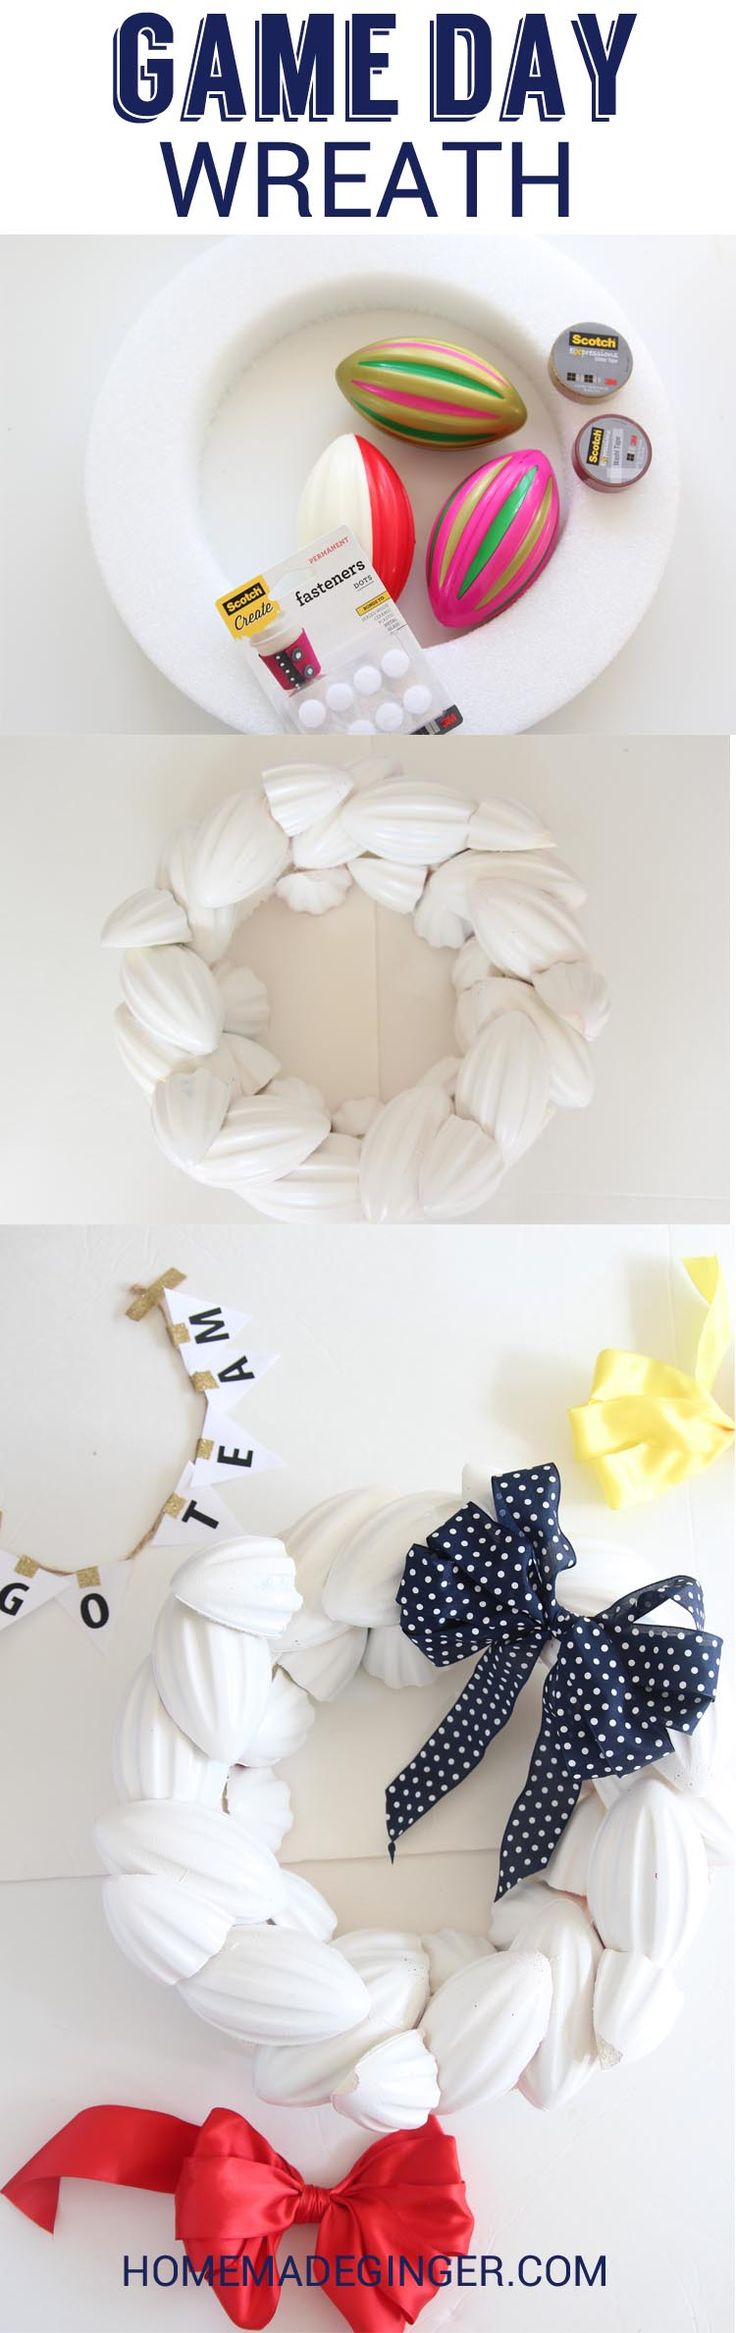 69 best Deco Mesh Wreath images on Pinterest | Deco wreaths, Holiday ...